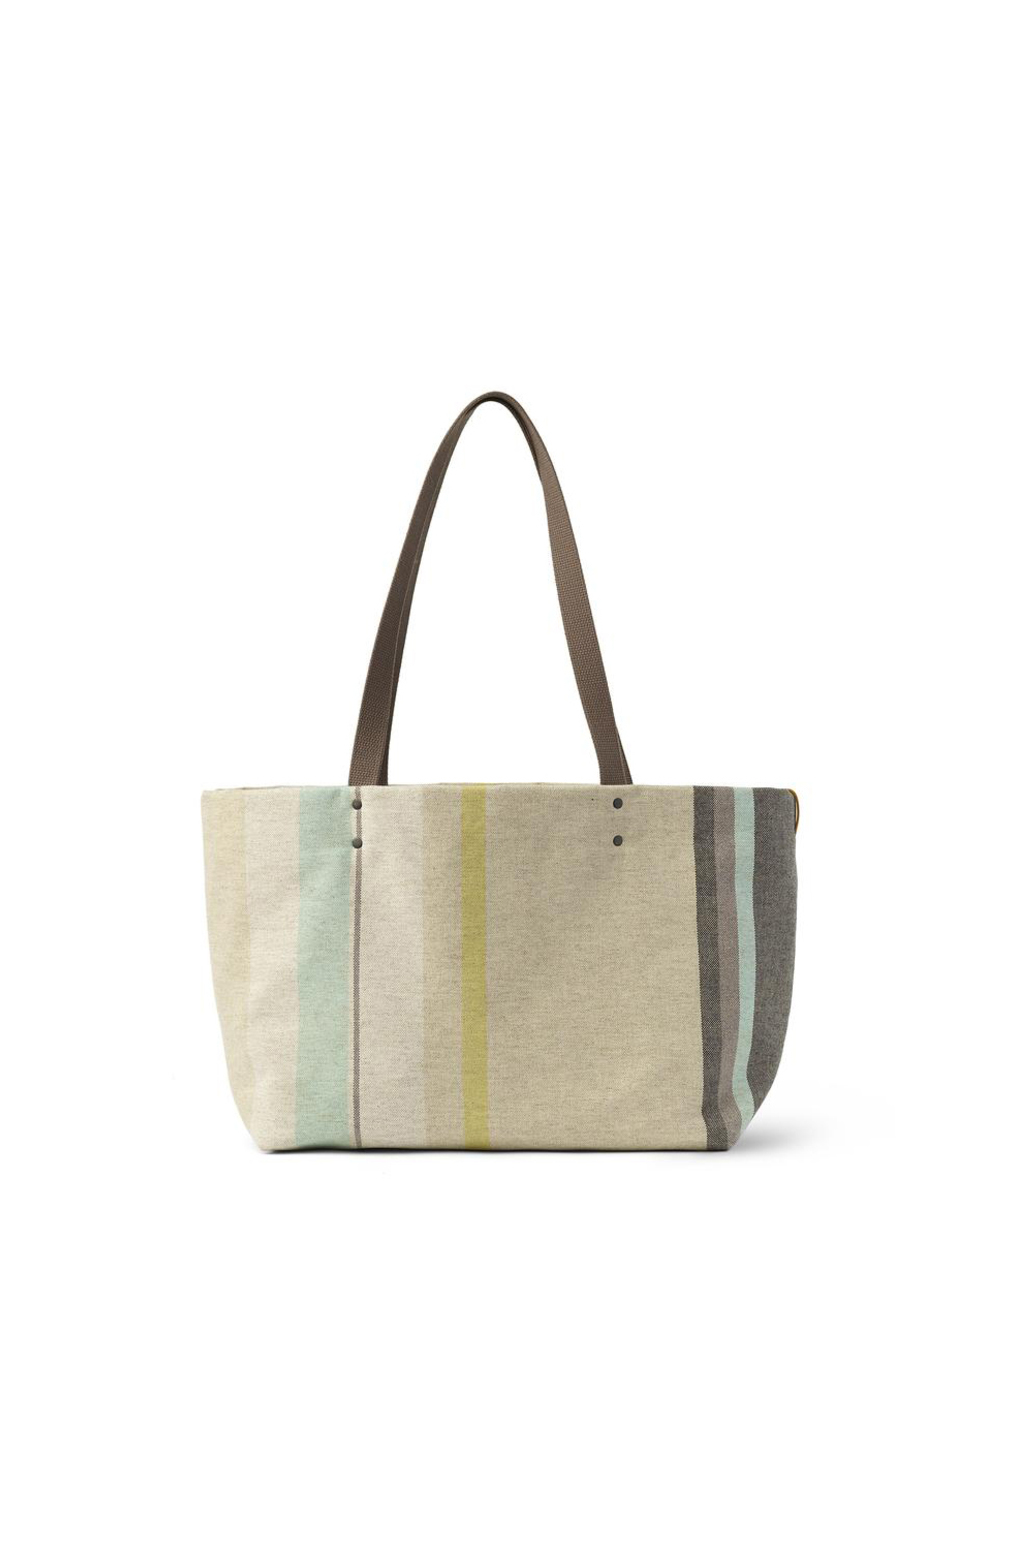 Alabama chanin heath ceramics reversible tote multi stripe 5